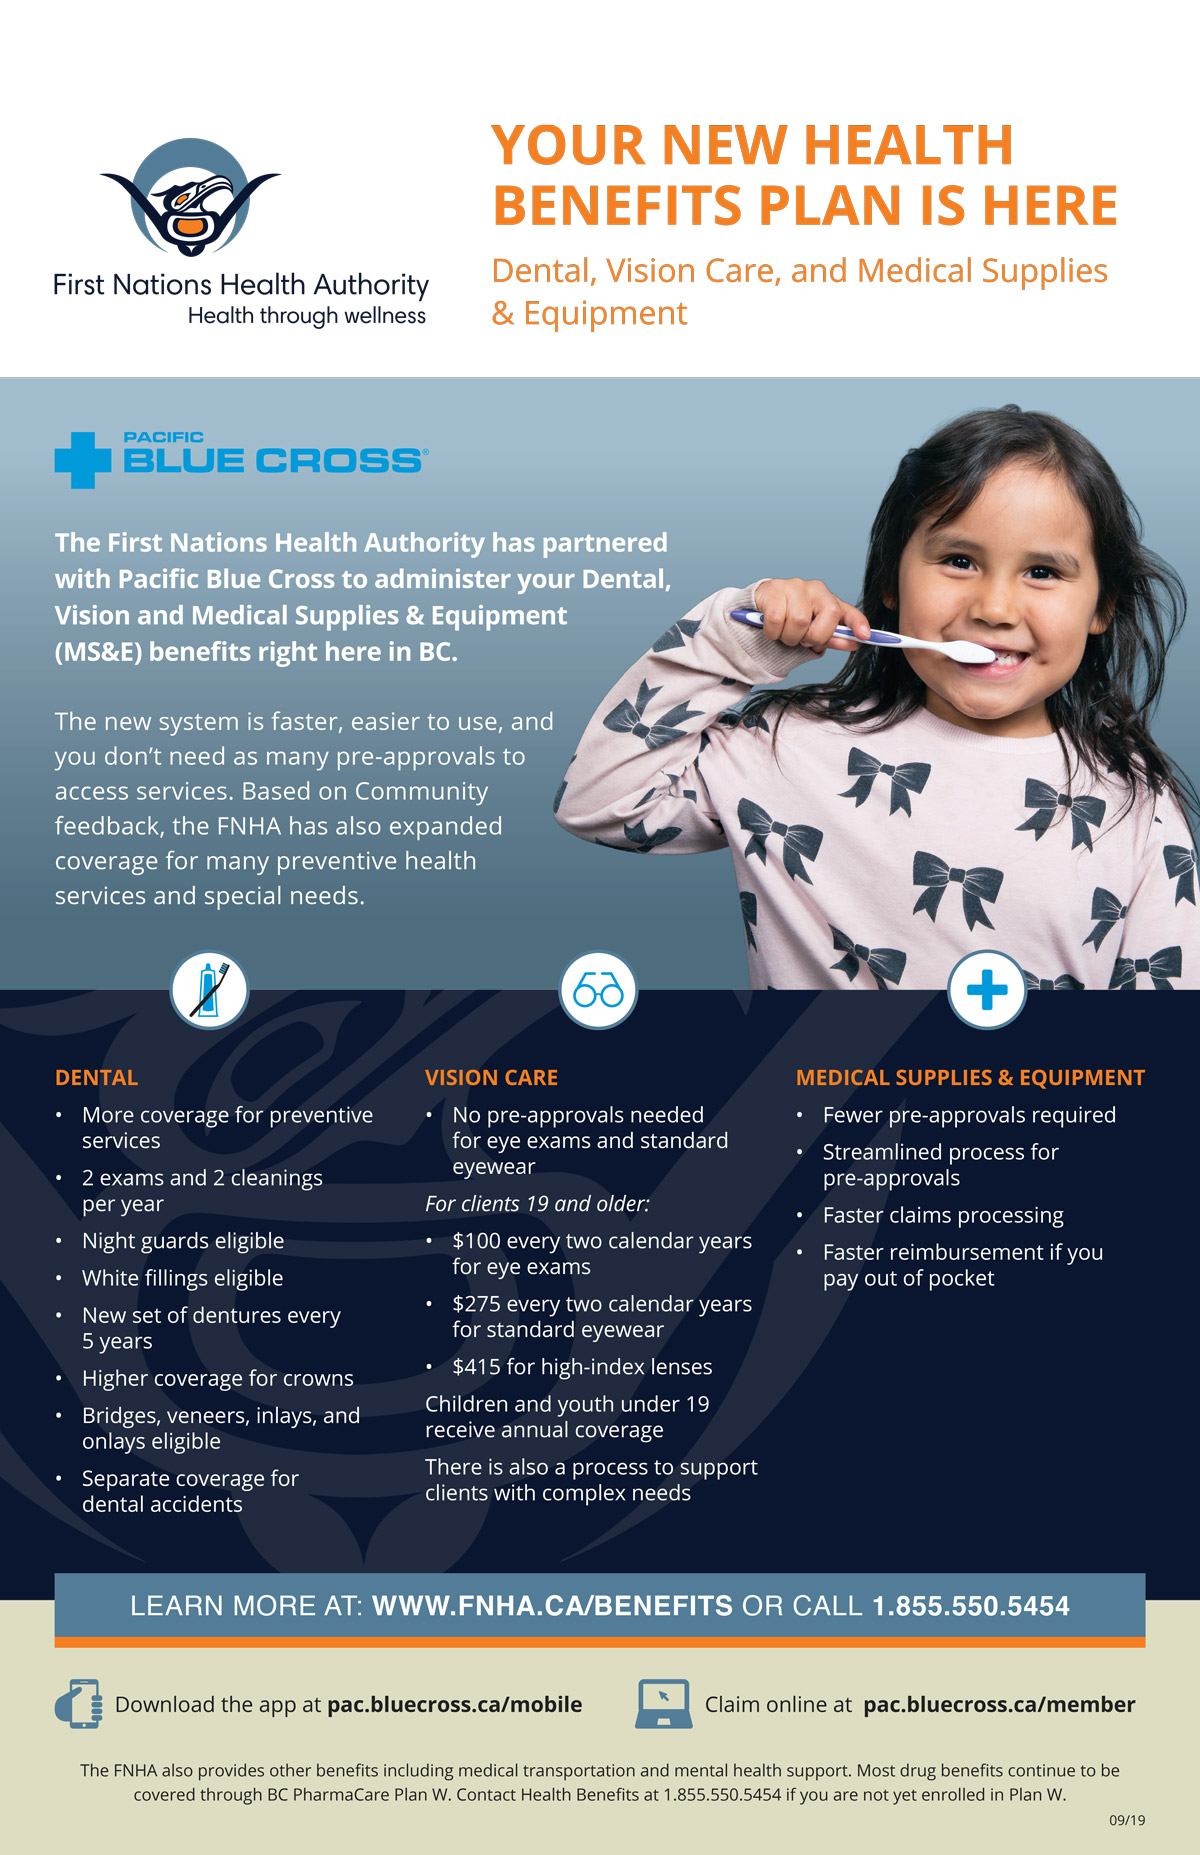 FNHA-Pacific-Blue-Cross-Benefits-Plan-Poster-A.jpg